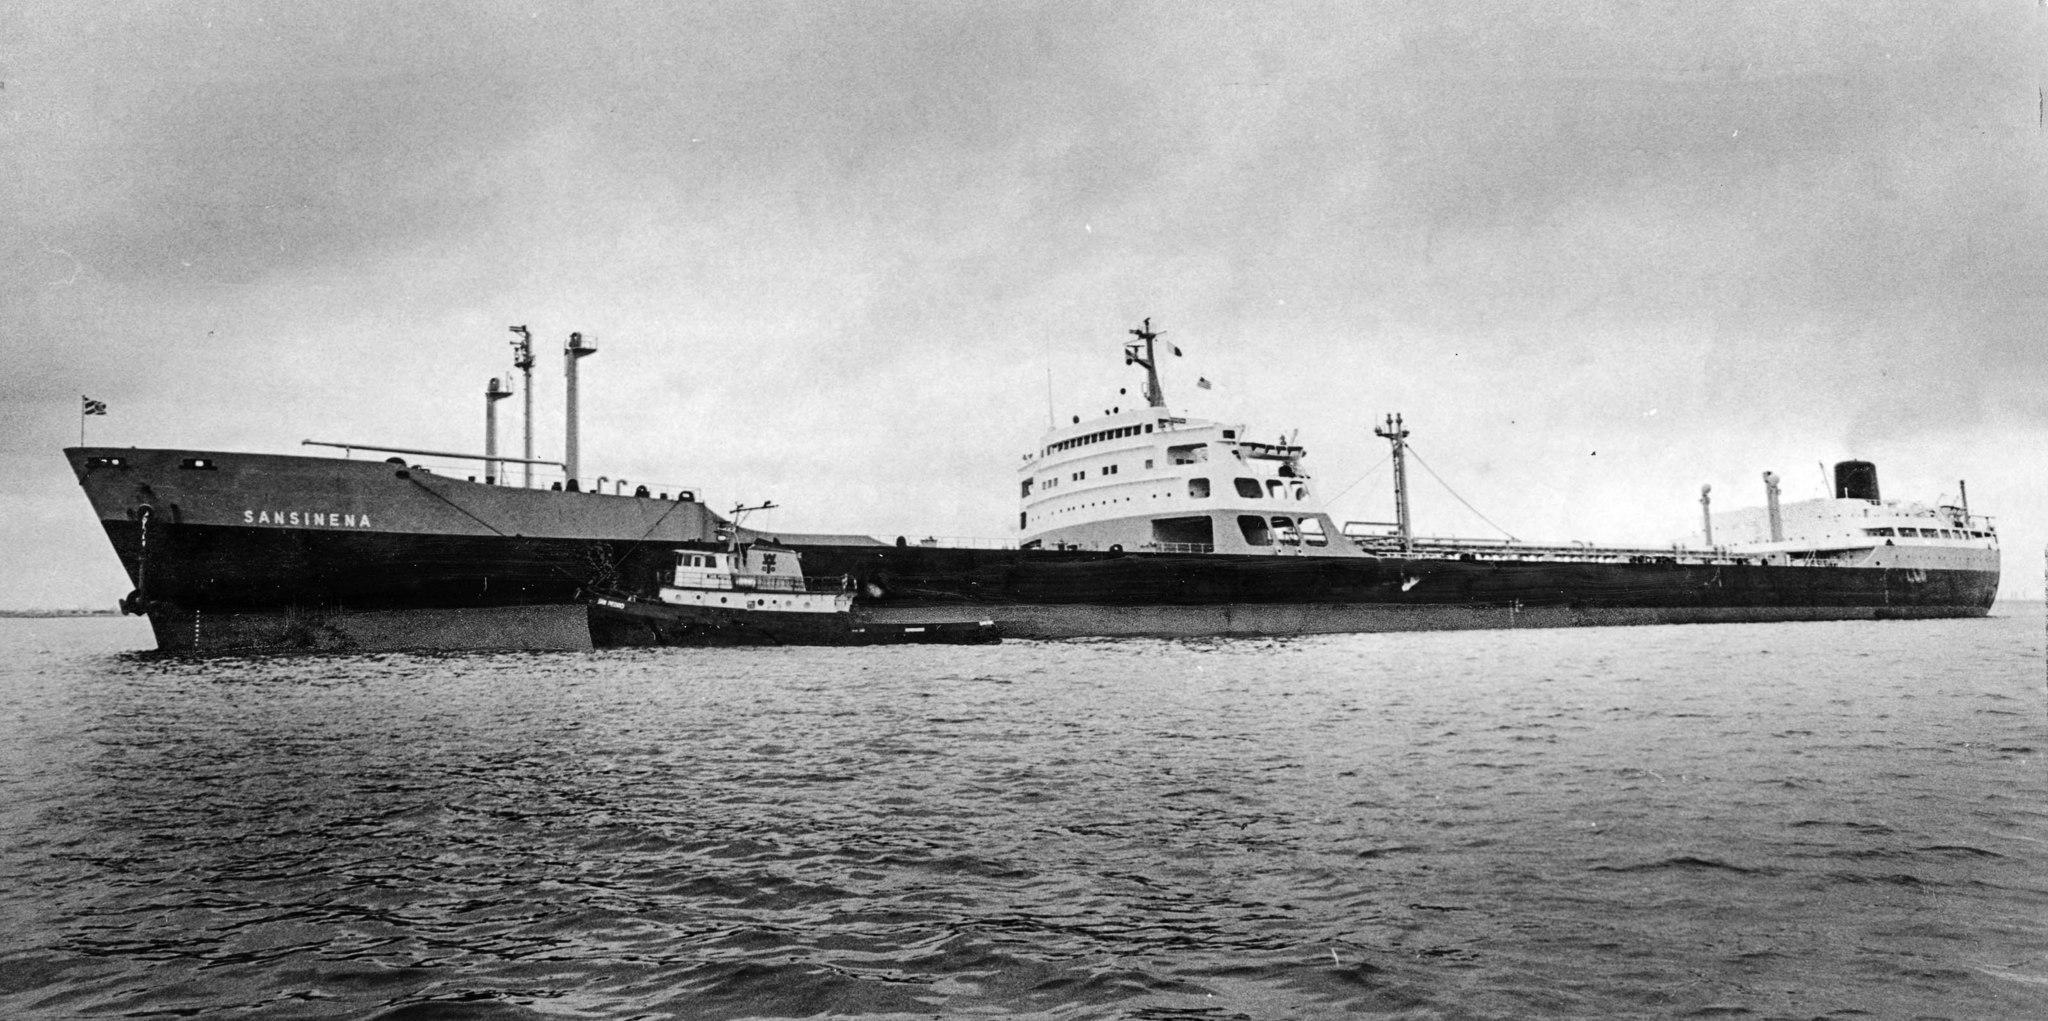 1975 photo of the Sansinena during a visit to Los Angeles Harbor. This photo appeared in the Dec. 18